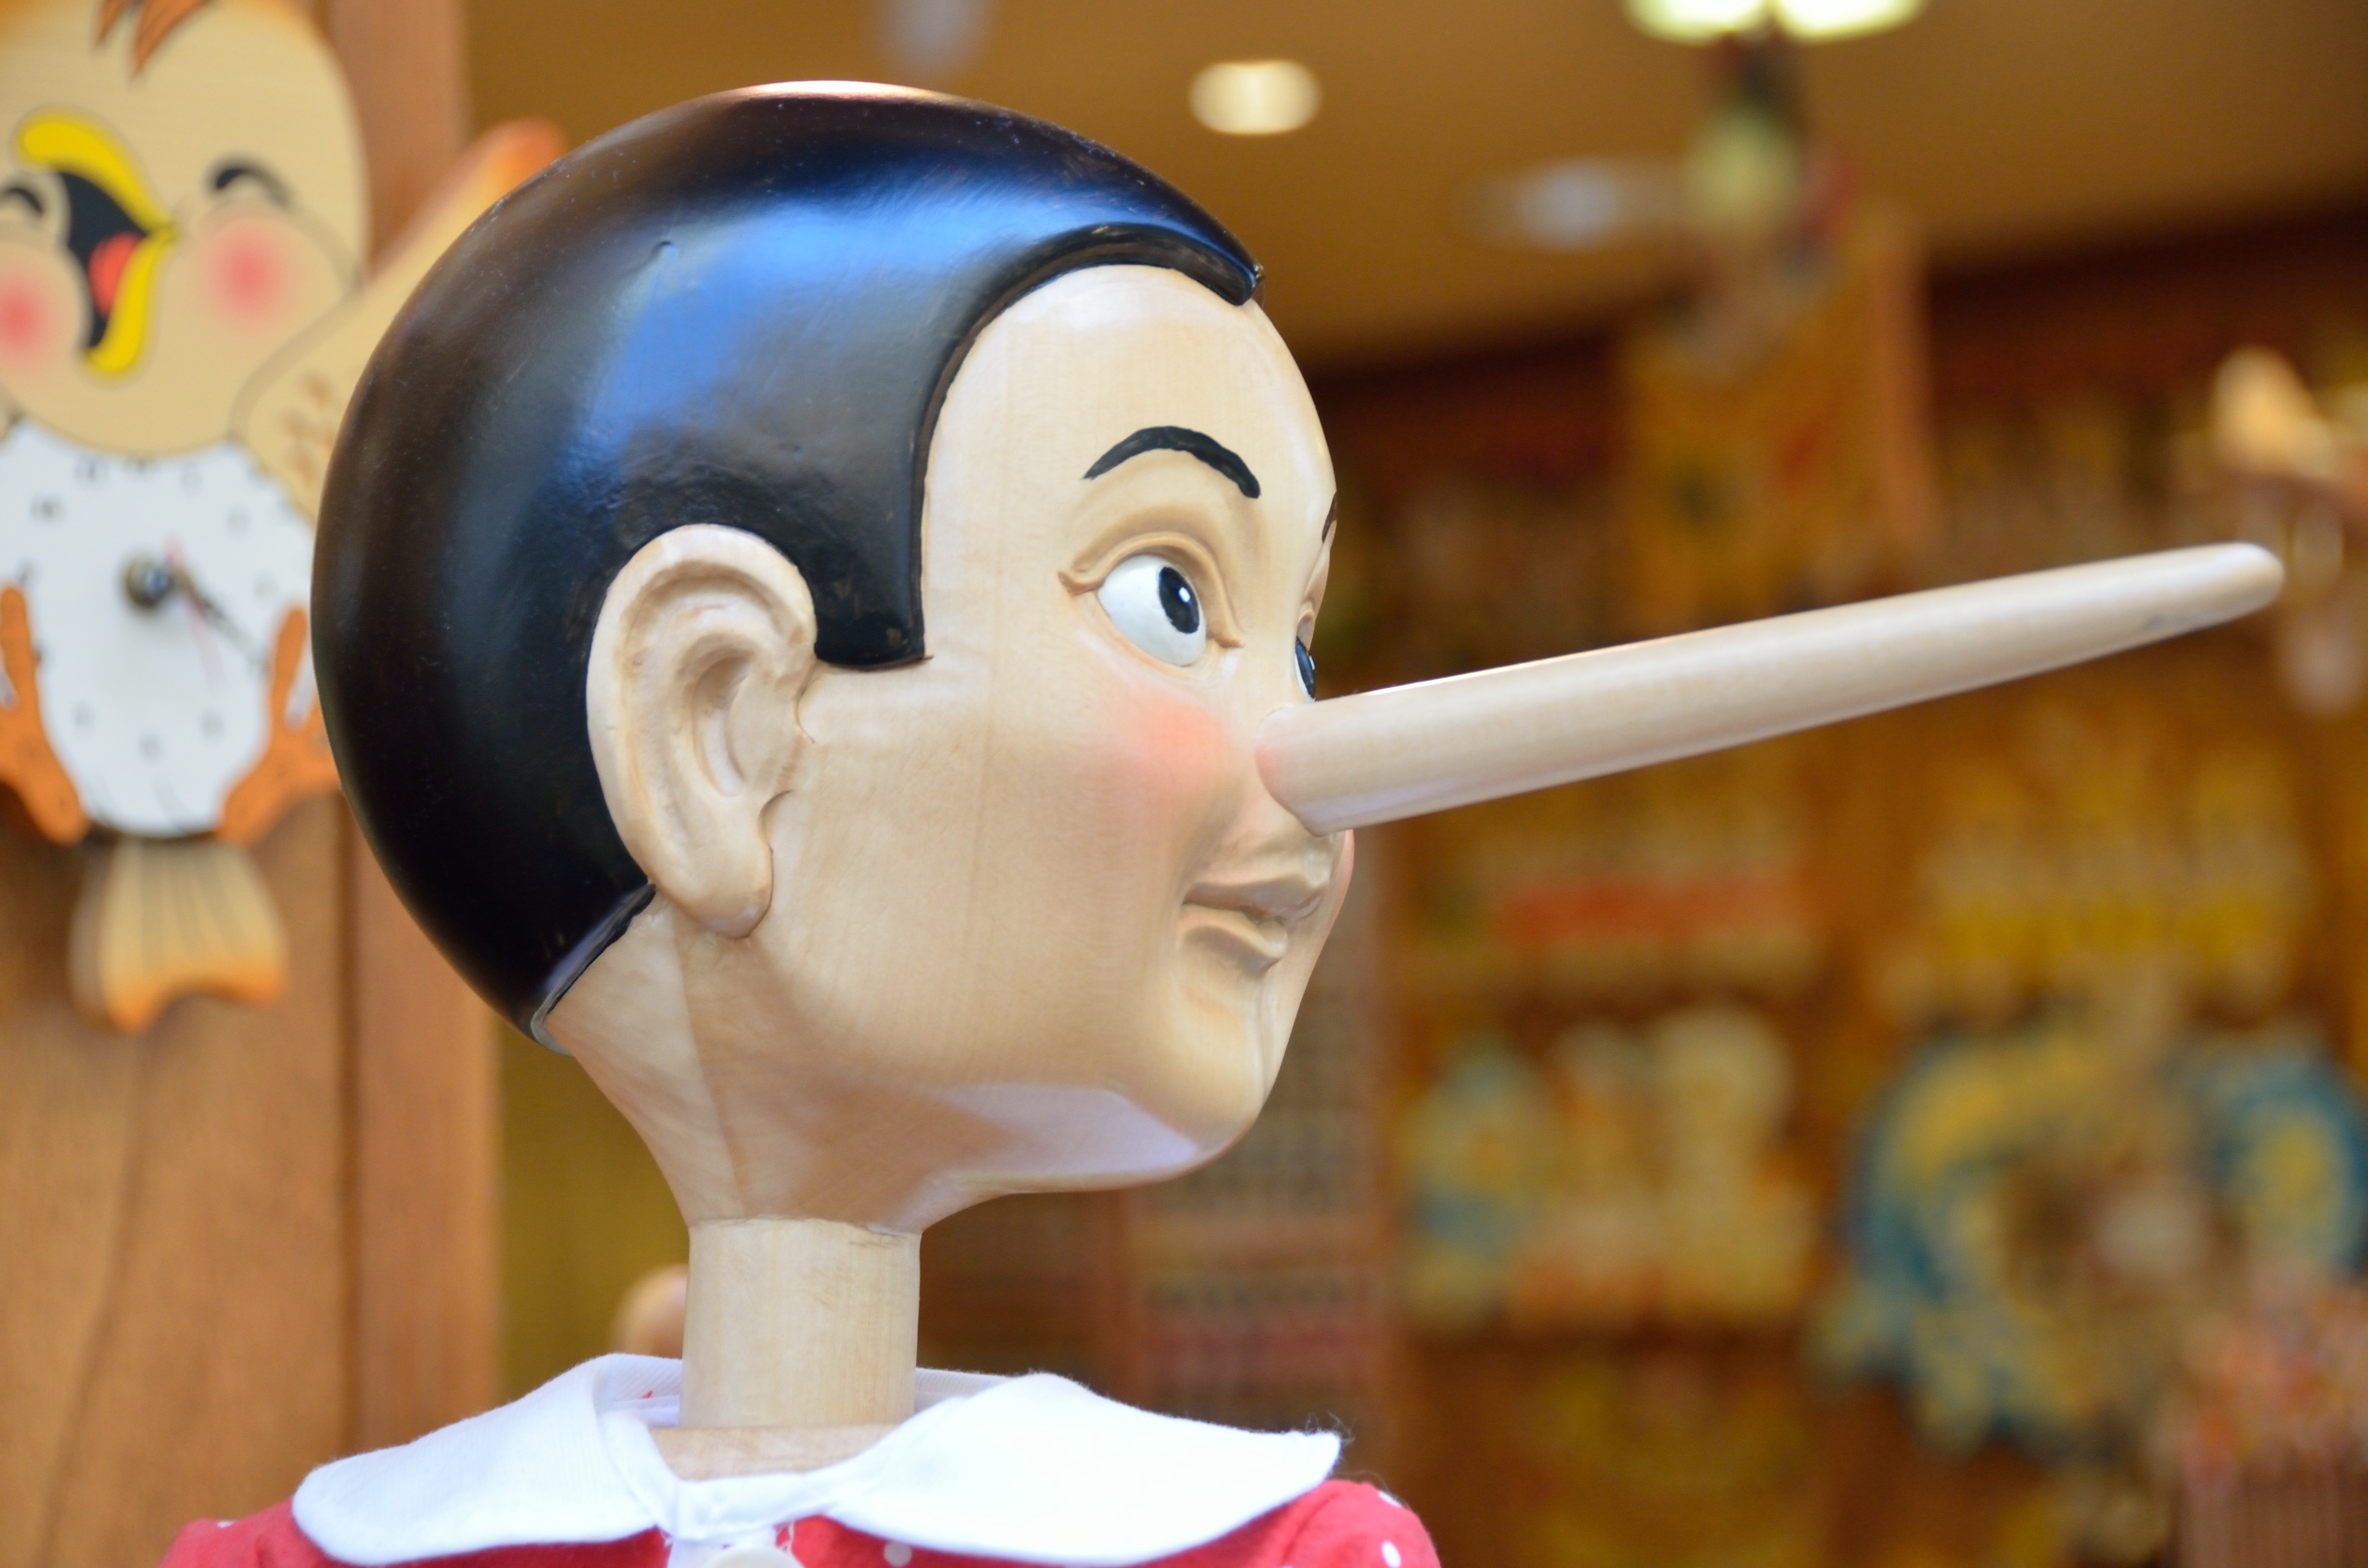 A wooden Pinocchio puppet, long nose pointing to the right.